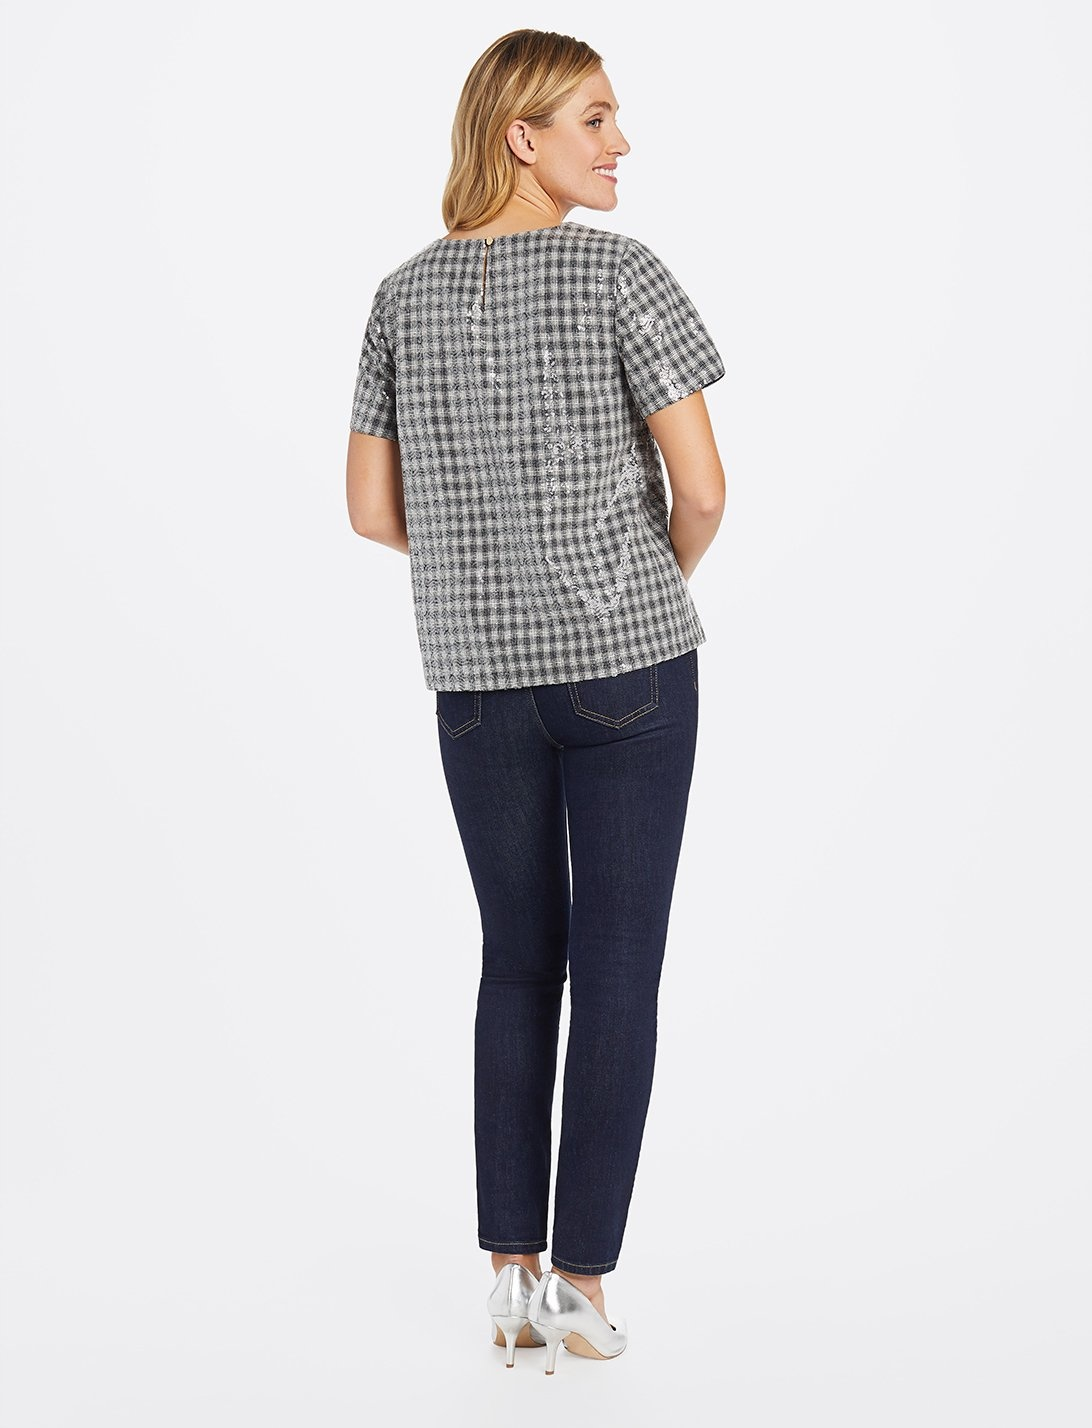 DRAPER JAMES Collection Sequin Top